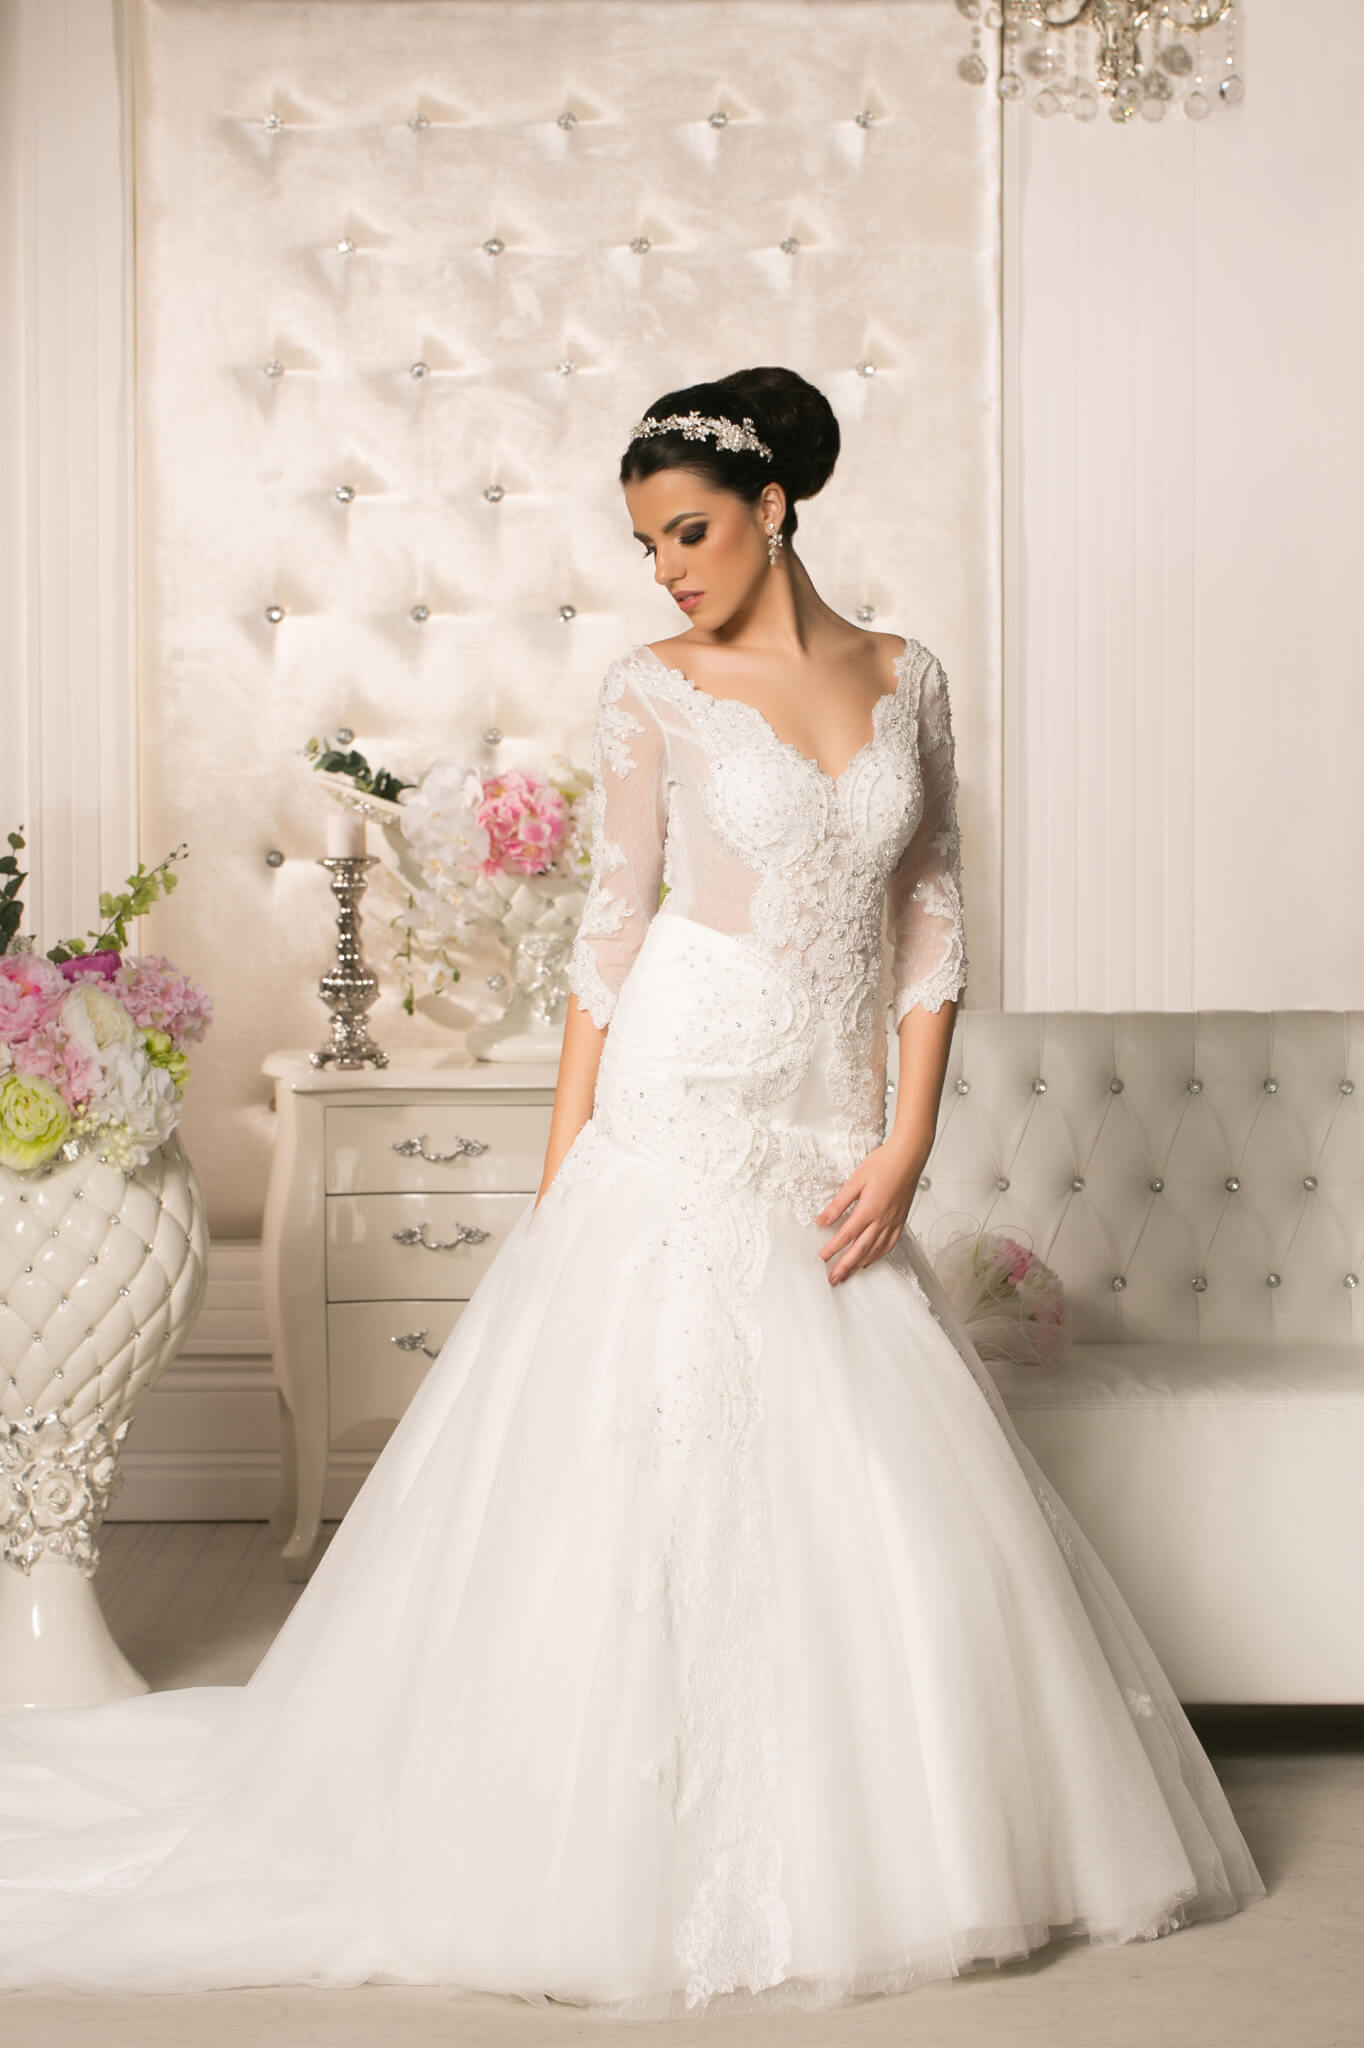 Wedding Dress alterations NYC